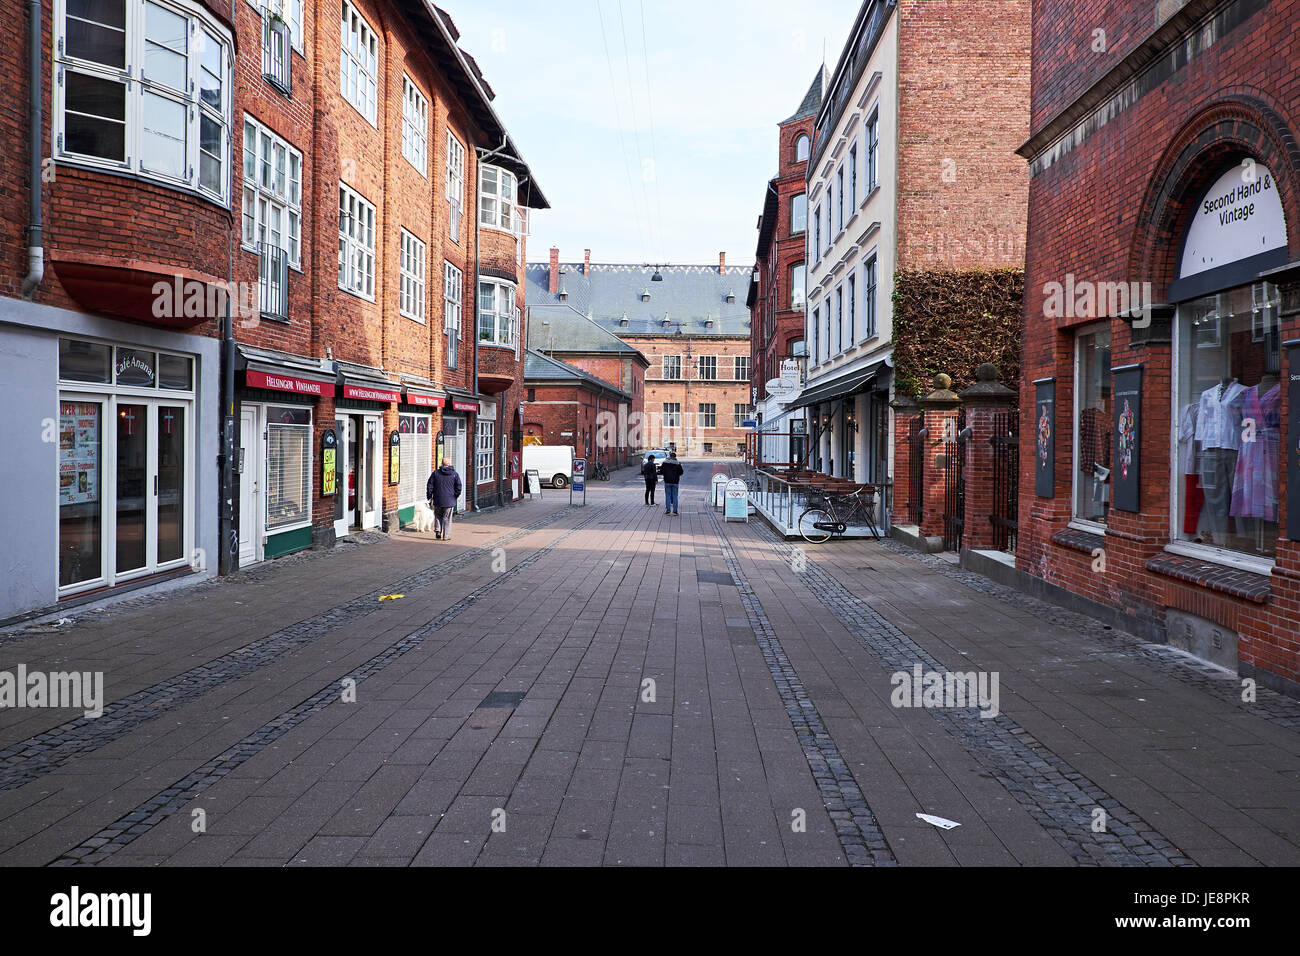 ELSINORE, DENMARK - APRIL 30, 2016: The deserted pedestrian streets of Elsinore, with low housing - Stock Image